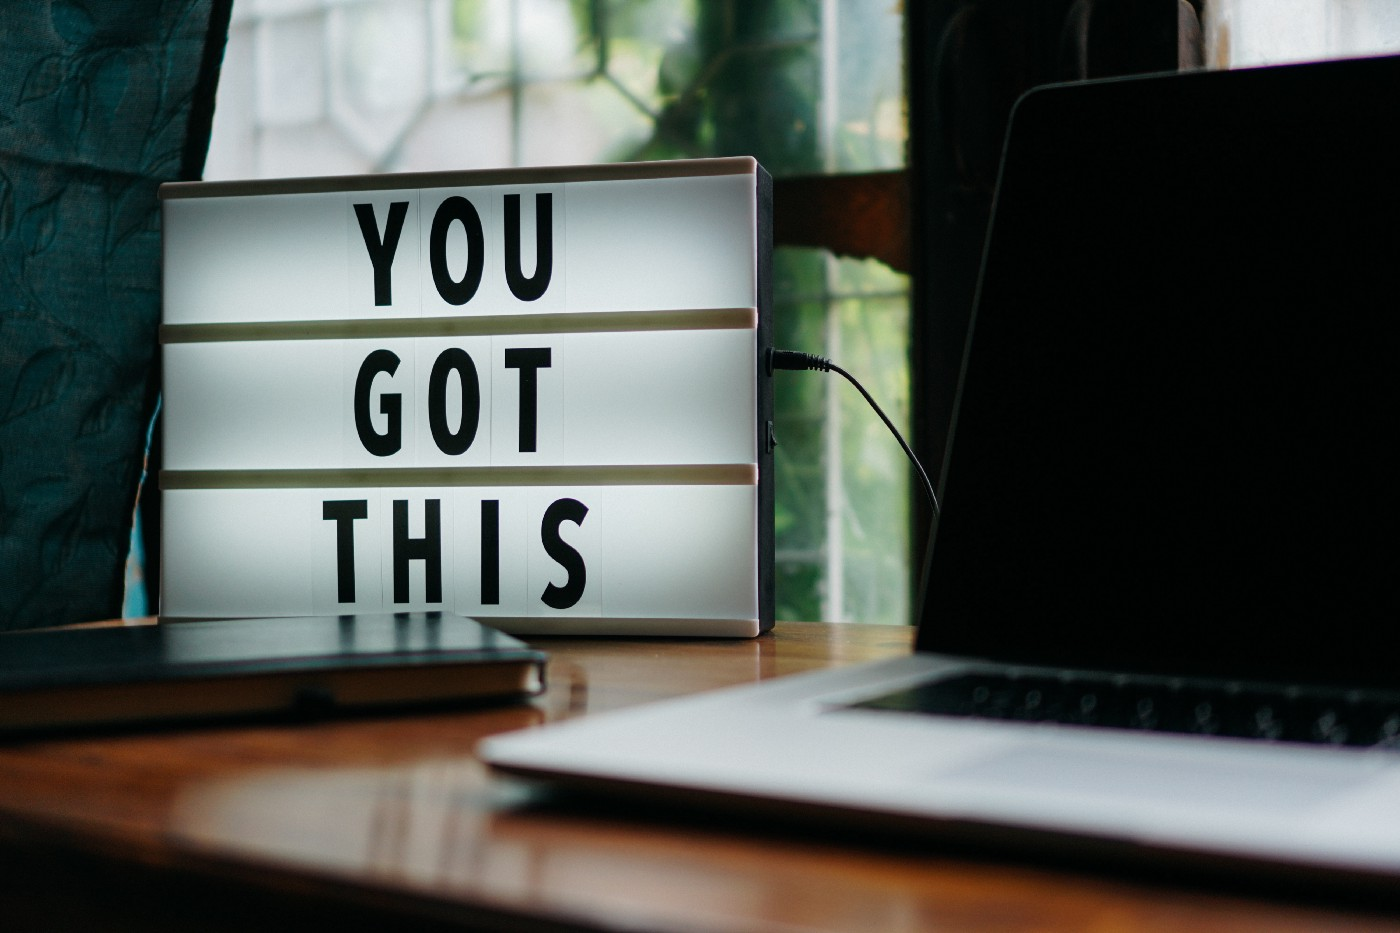 """A sign that says """"YOU GOT THIS"""""""